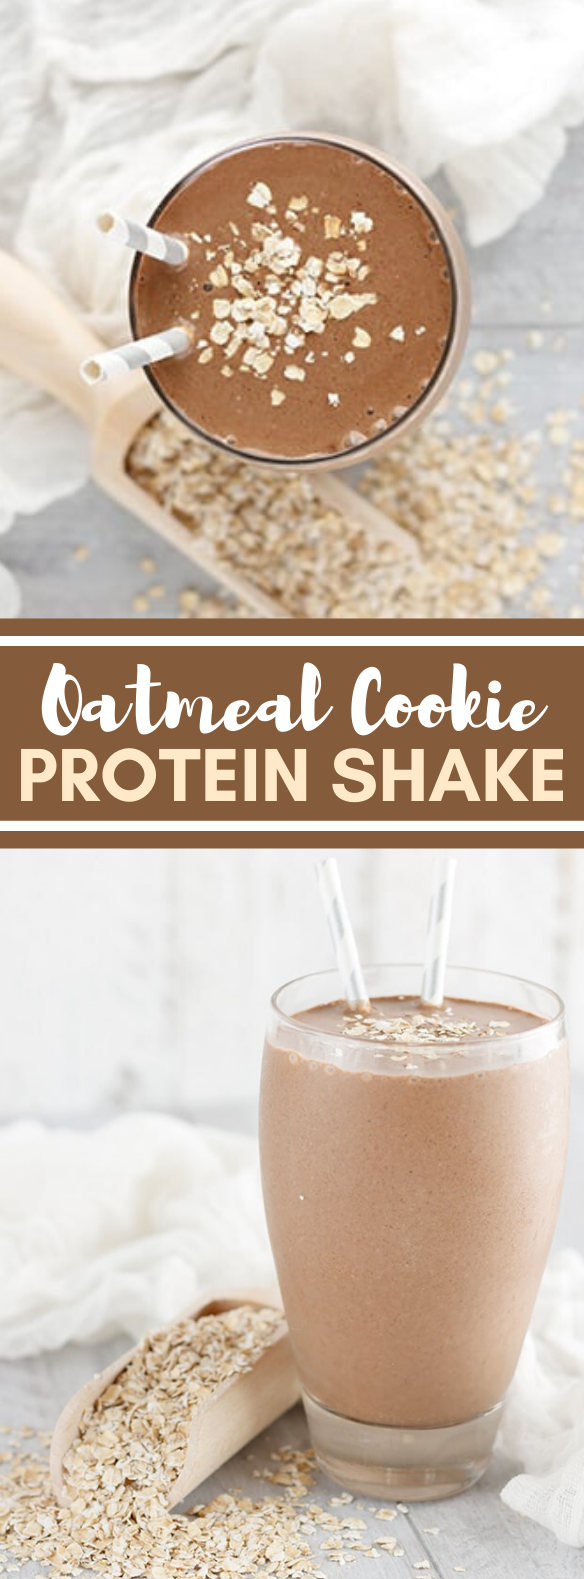 Oatmeal Cookie Protein Shake #drinks #healthy